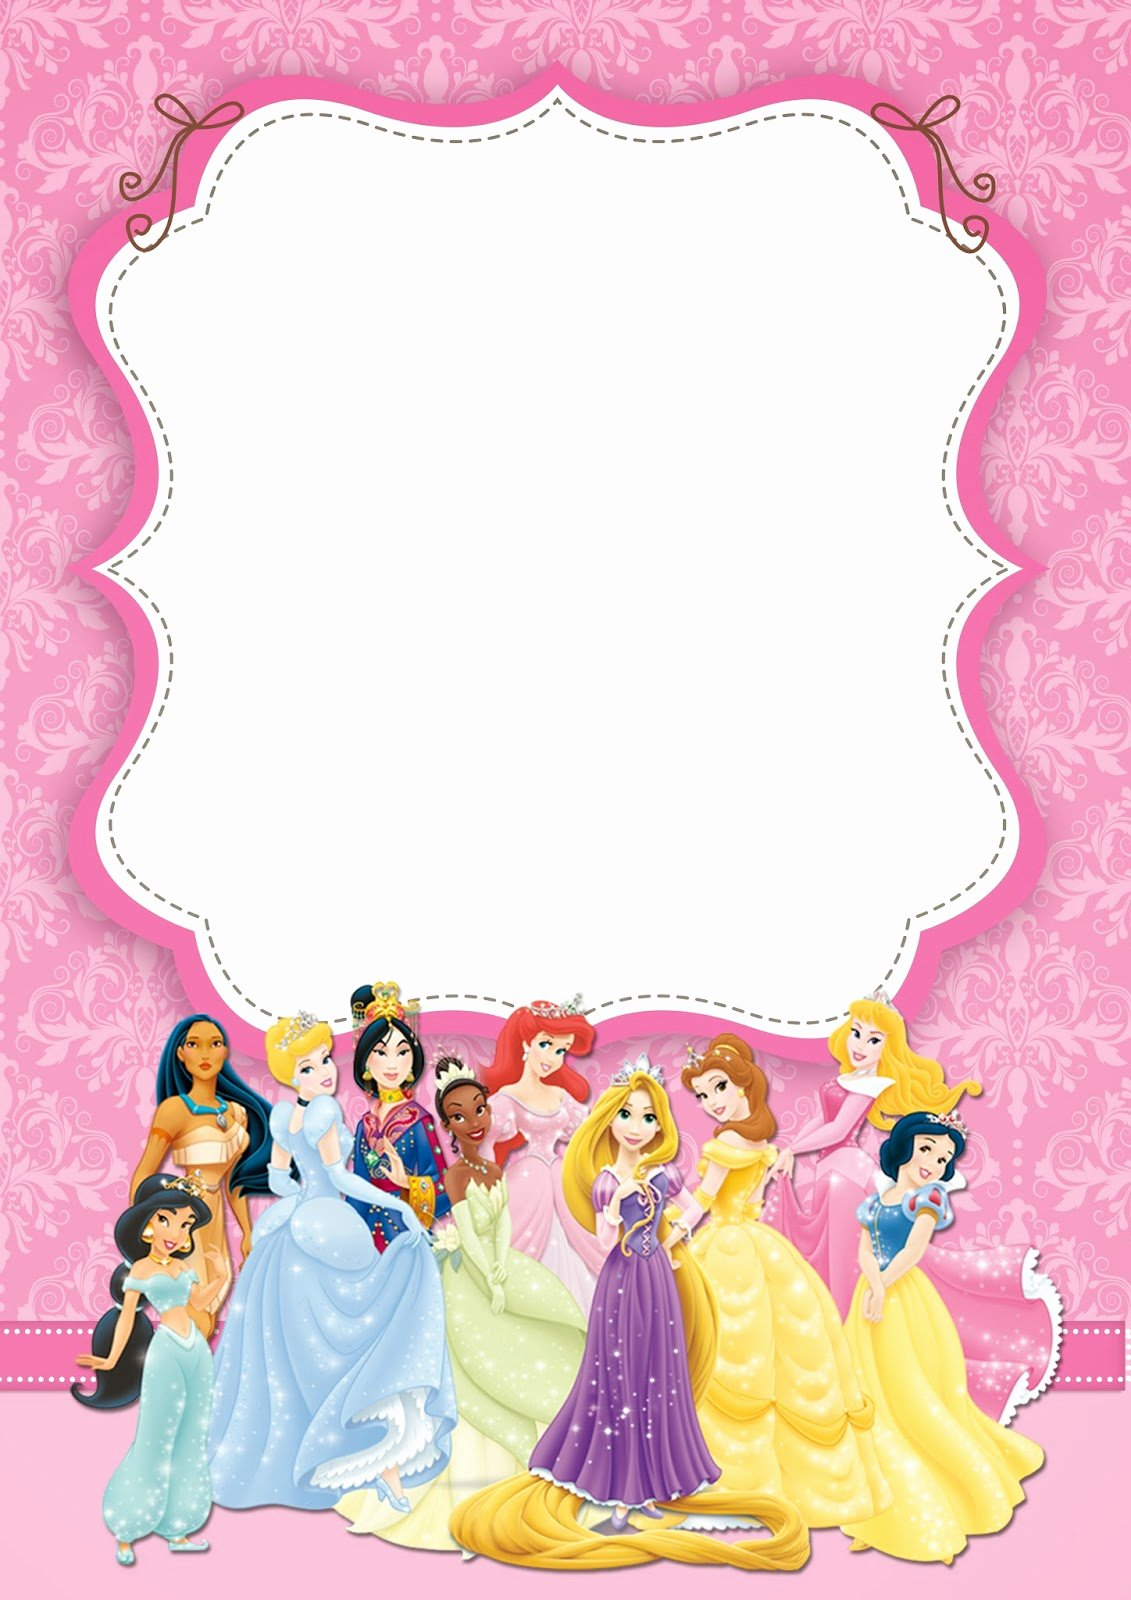 Disney Princess Invitation Templates Free New Free Printable Disney Princess Ticket Invitation Template